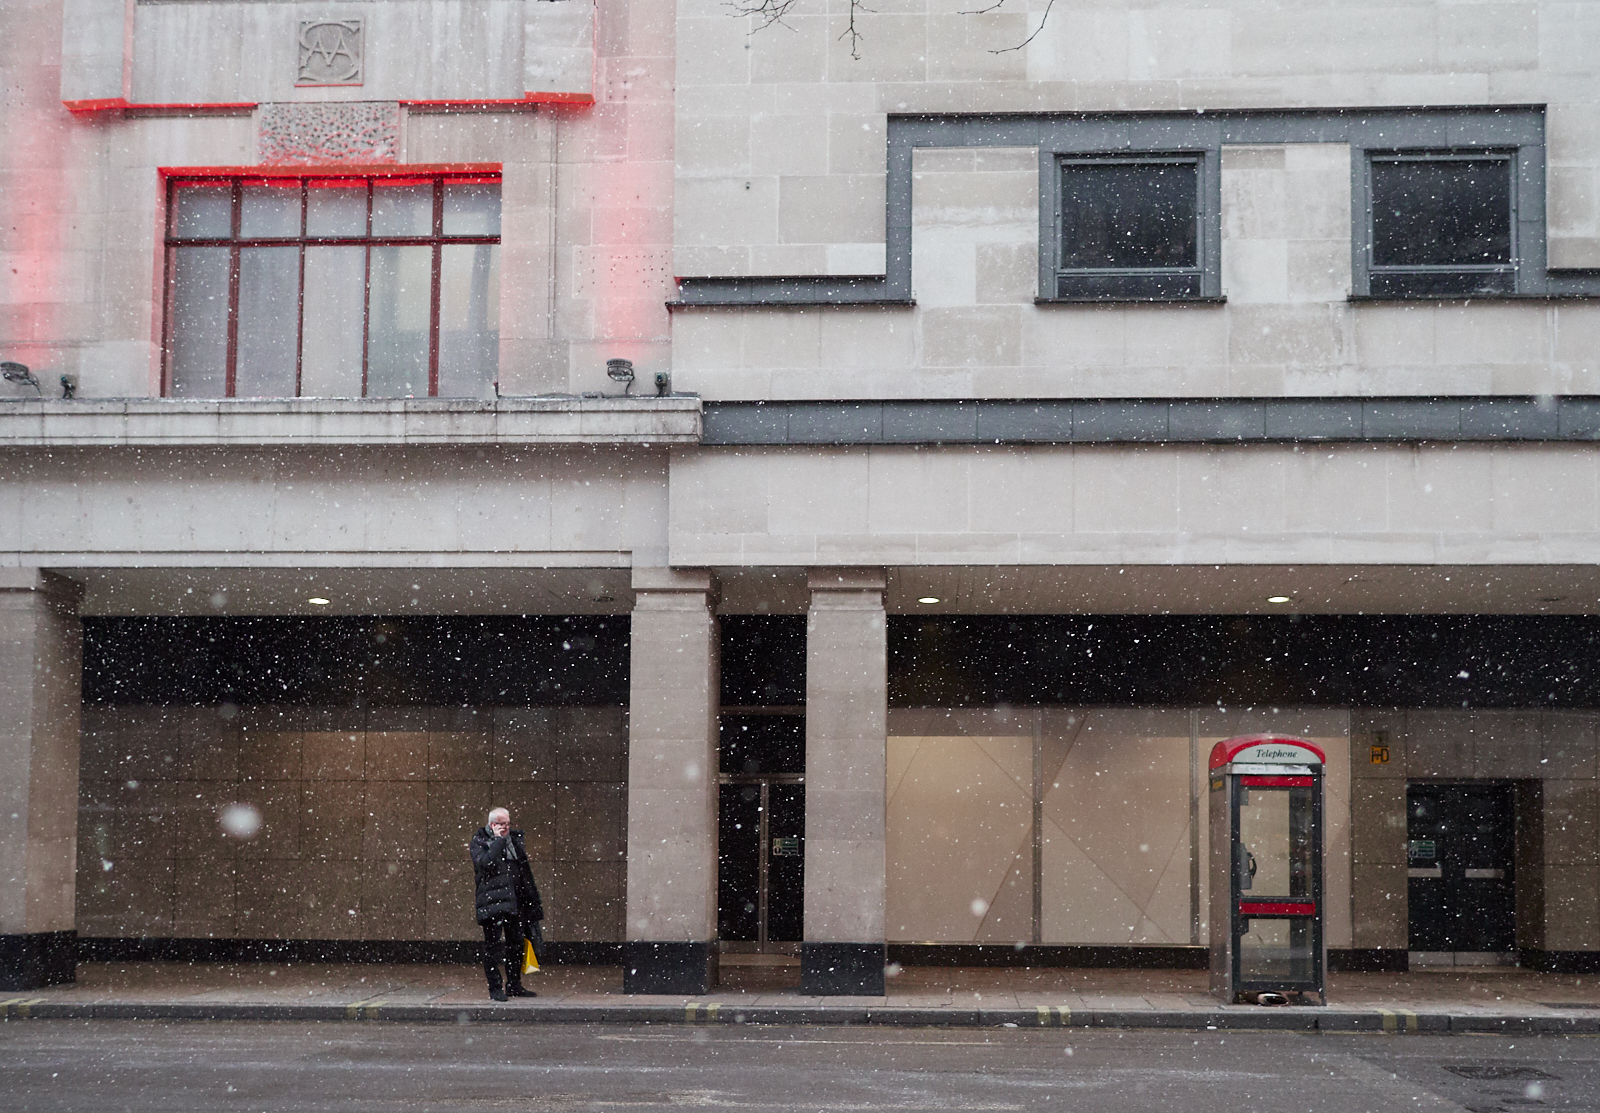 Phoning home in the snow1600x1200 sRGB.jpg